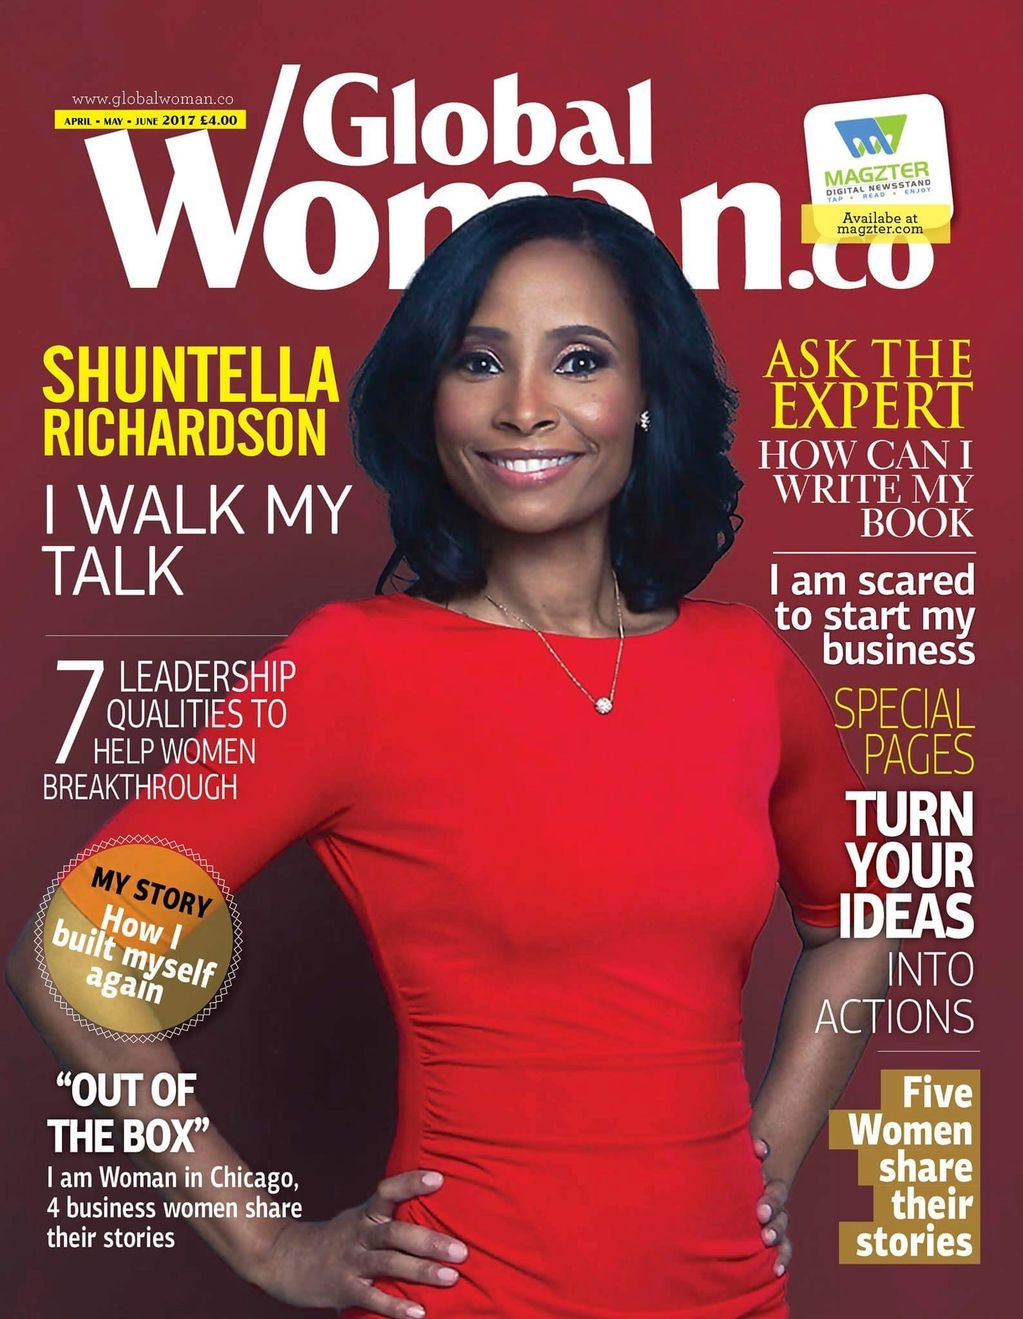 Shuntella Richardson and Global Woman Magazine